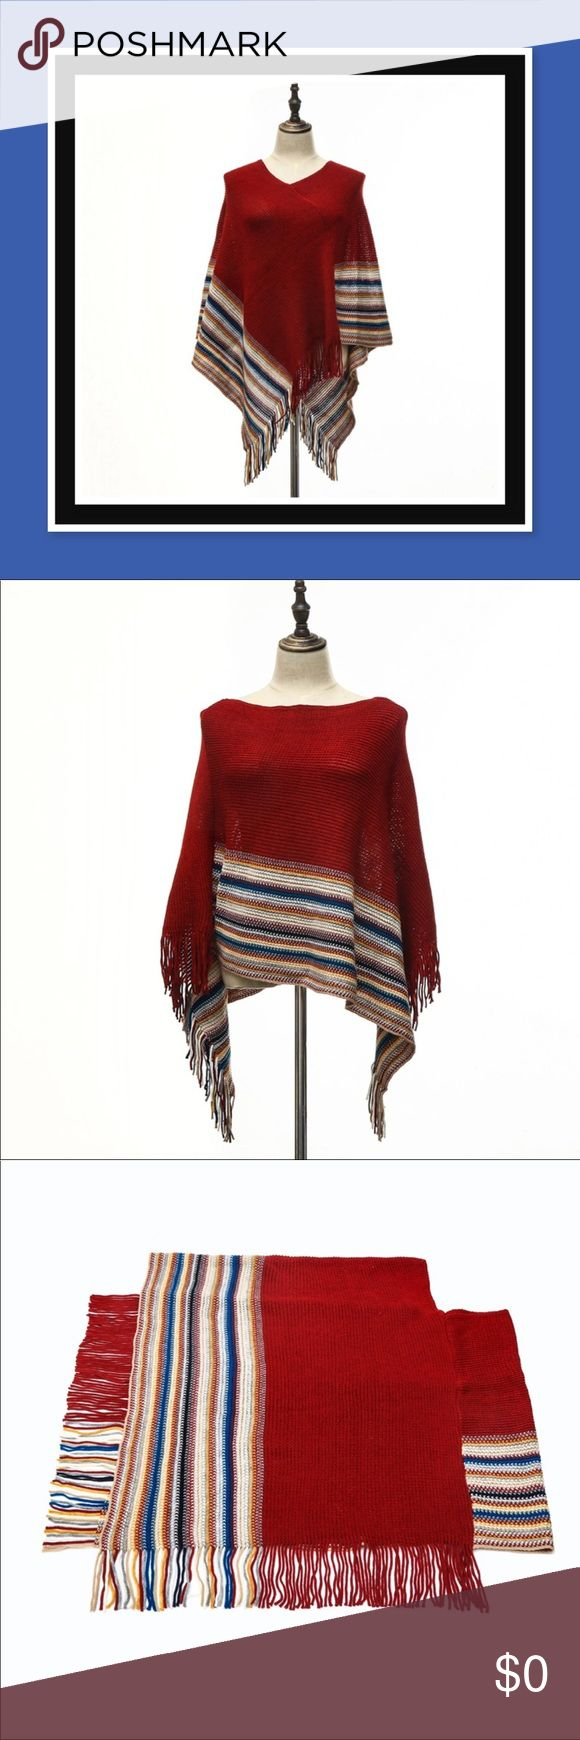 🌀 JUST IN! 🌀 Striped Poncho 🌀 This stylish red knitted poncho with tassels has colorful stripes and is versatile as it may be worn longer in the front or longer on the sides. It's made of acrylic and is approximately 80-100 cm in length depending on which way you wear it. Only 1 available! Sweaters Shrugs & Ponchos